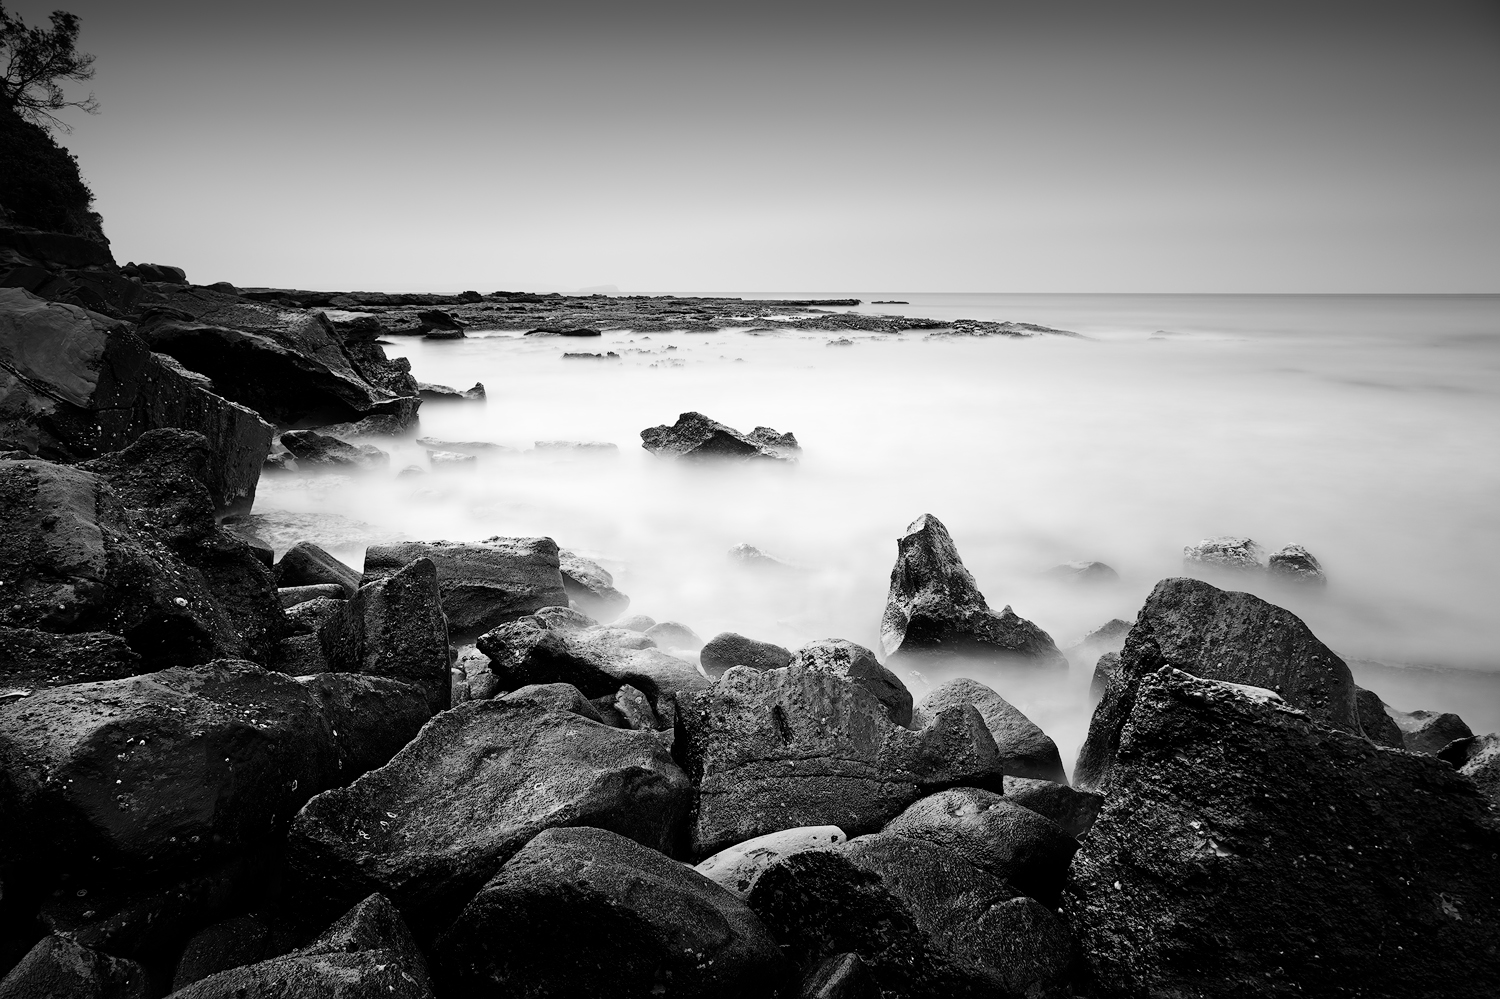 Cabbage Tree Bay in Mono